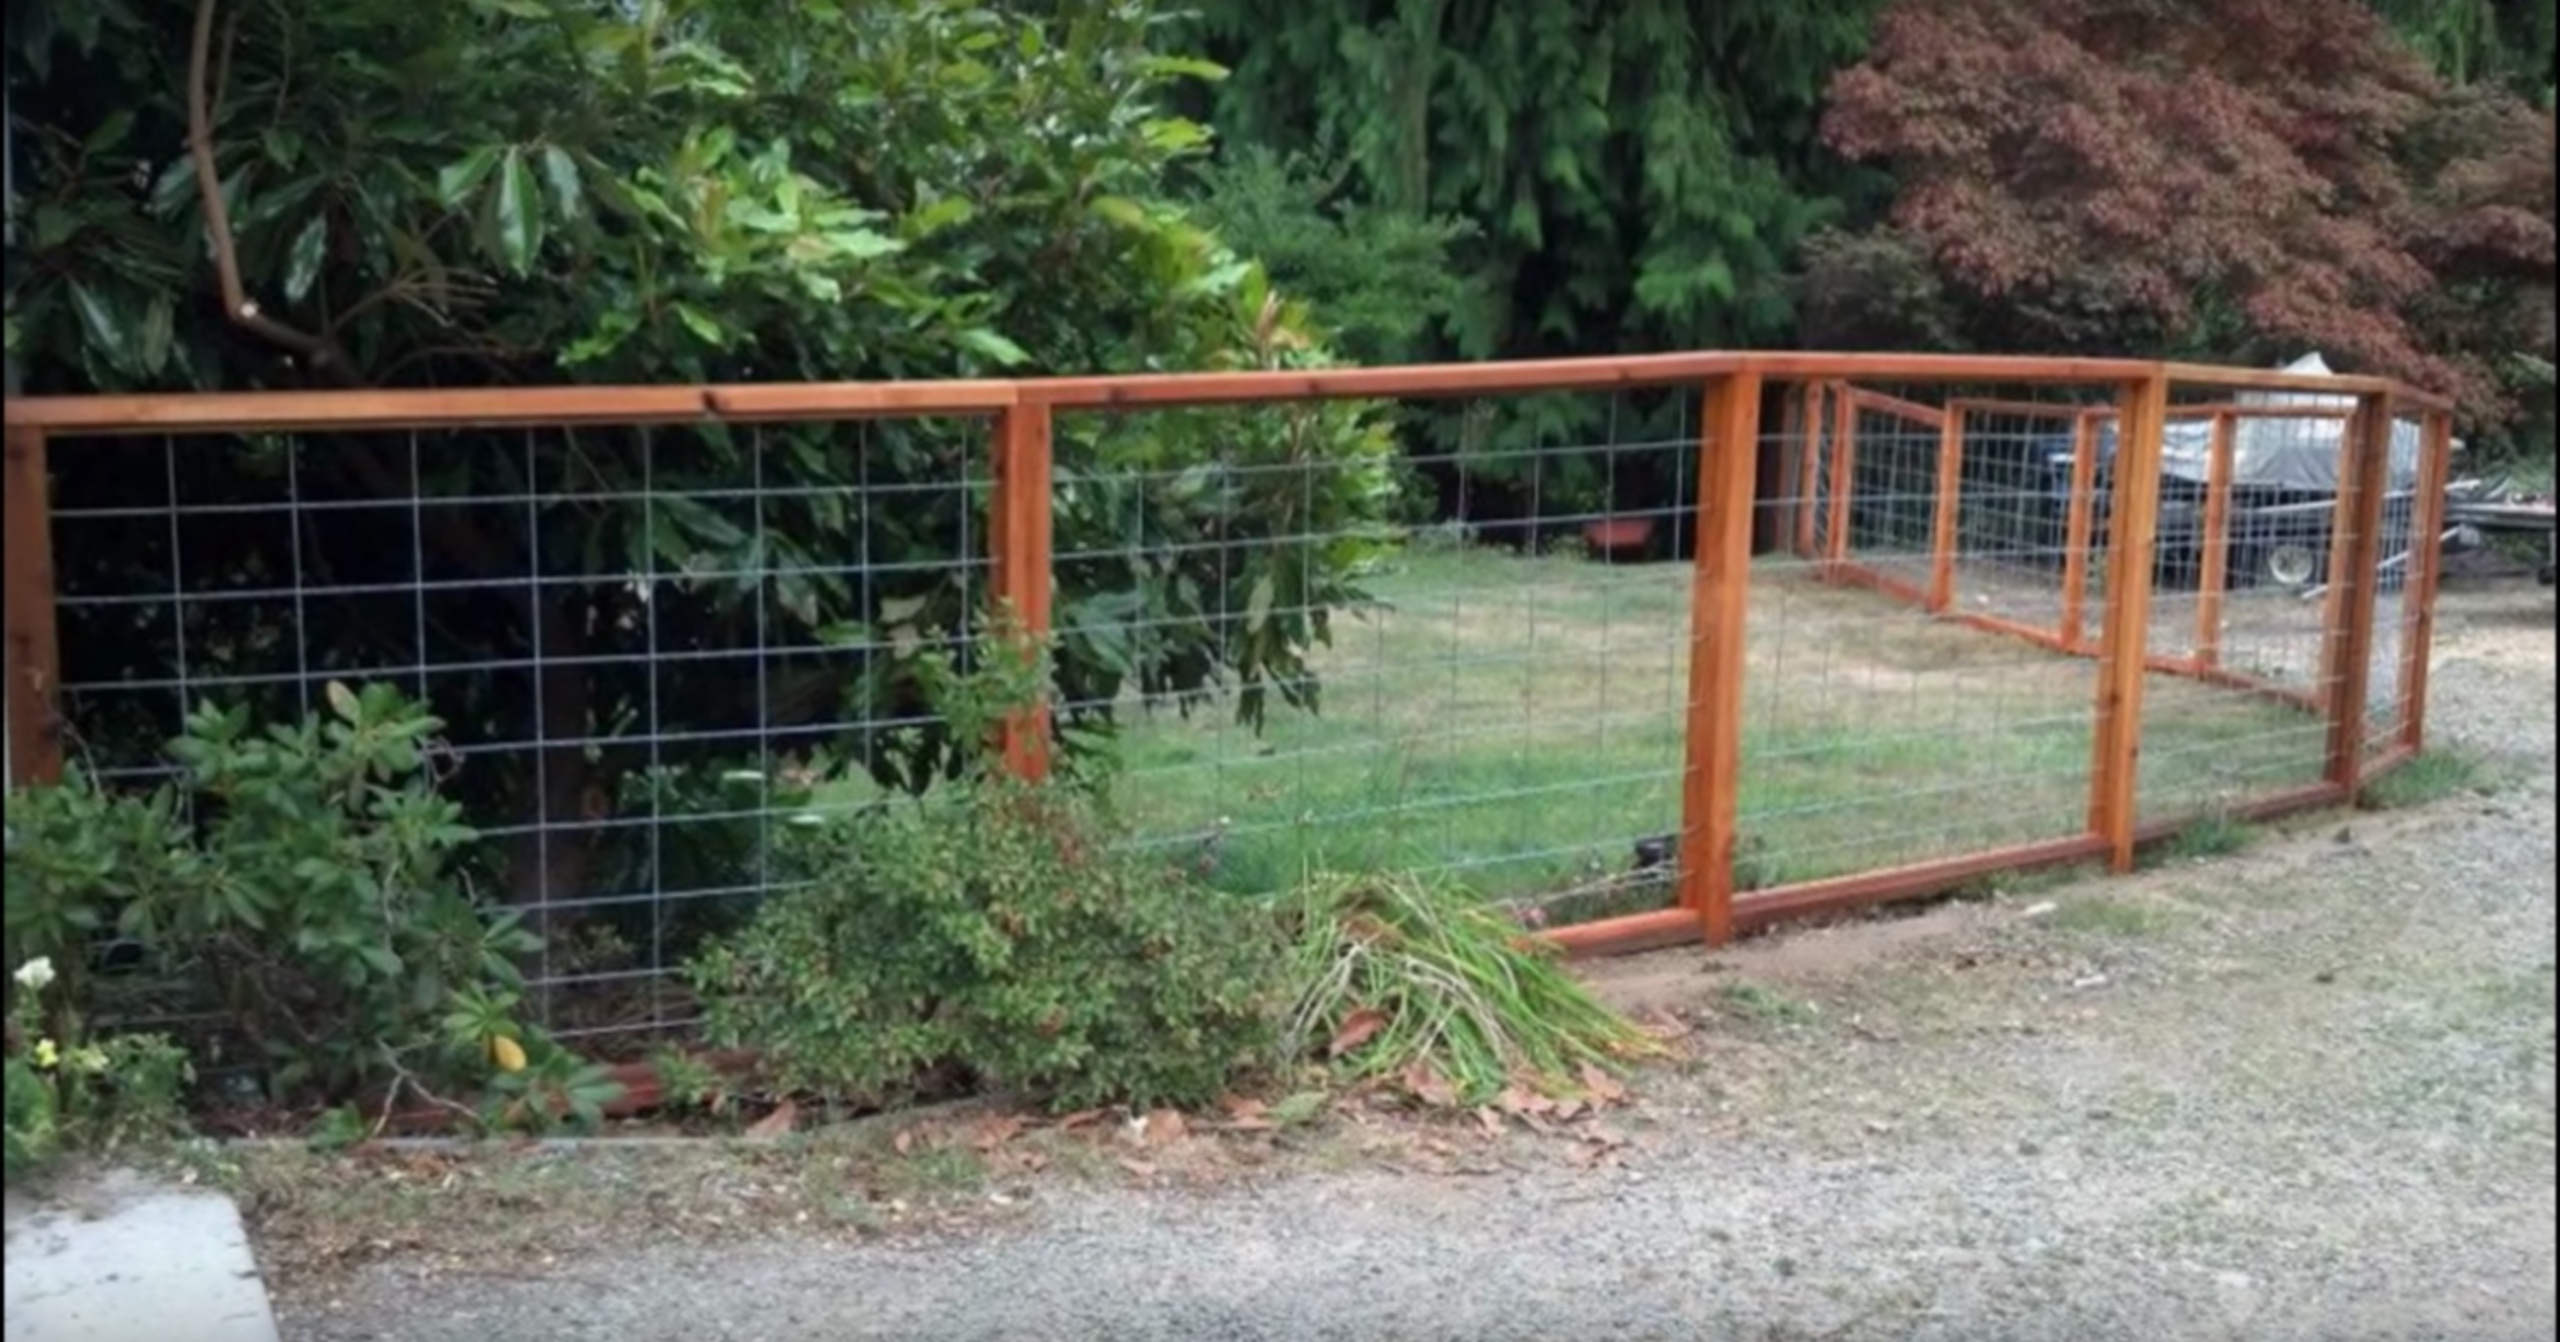 Get Rid Of That Chain Link Fence and Build A Stunning Wood Fence ...